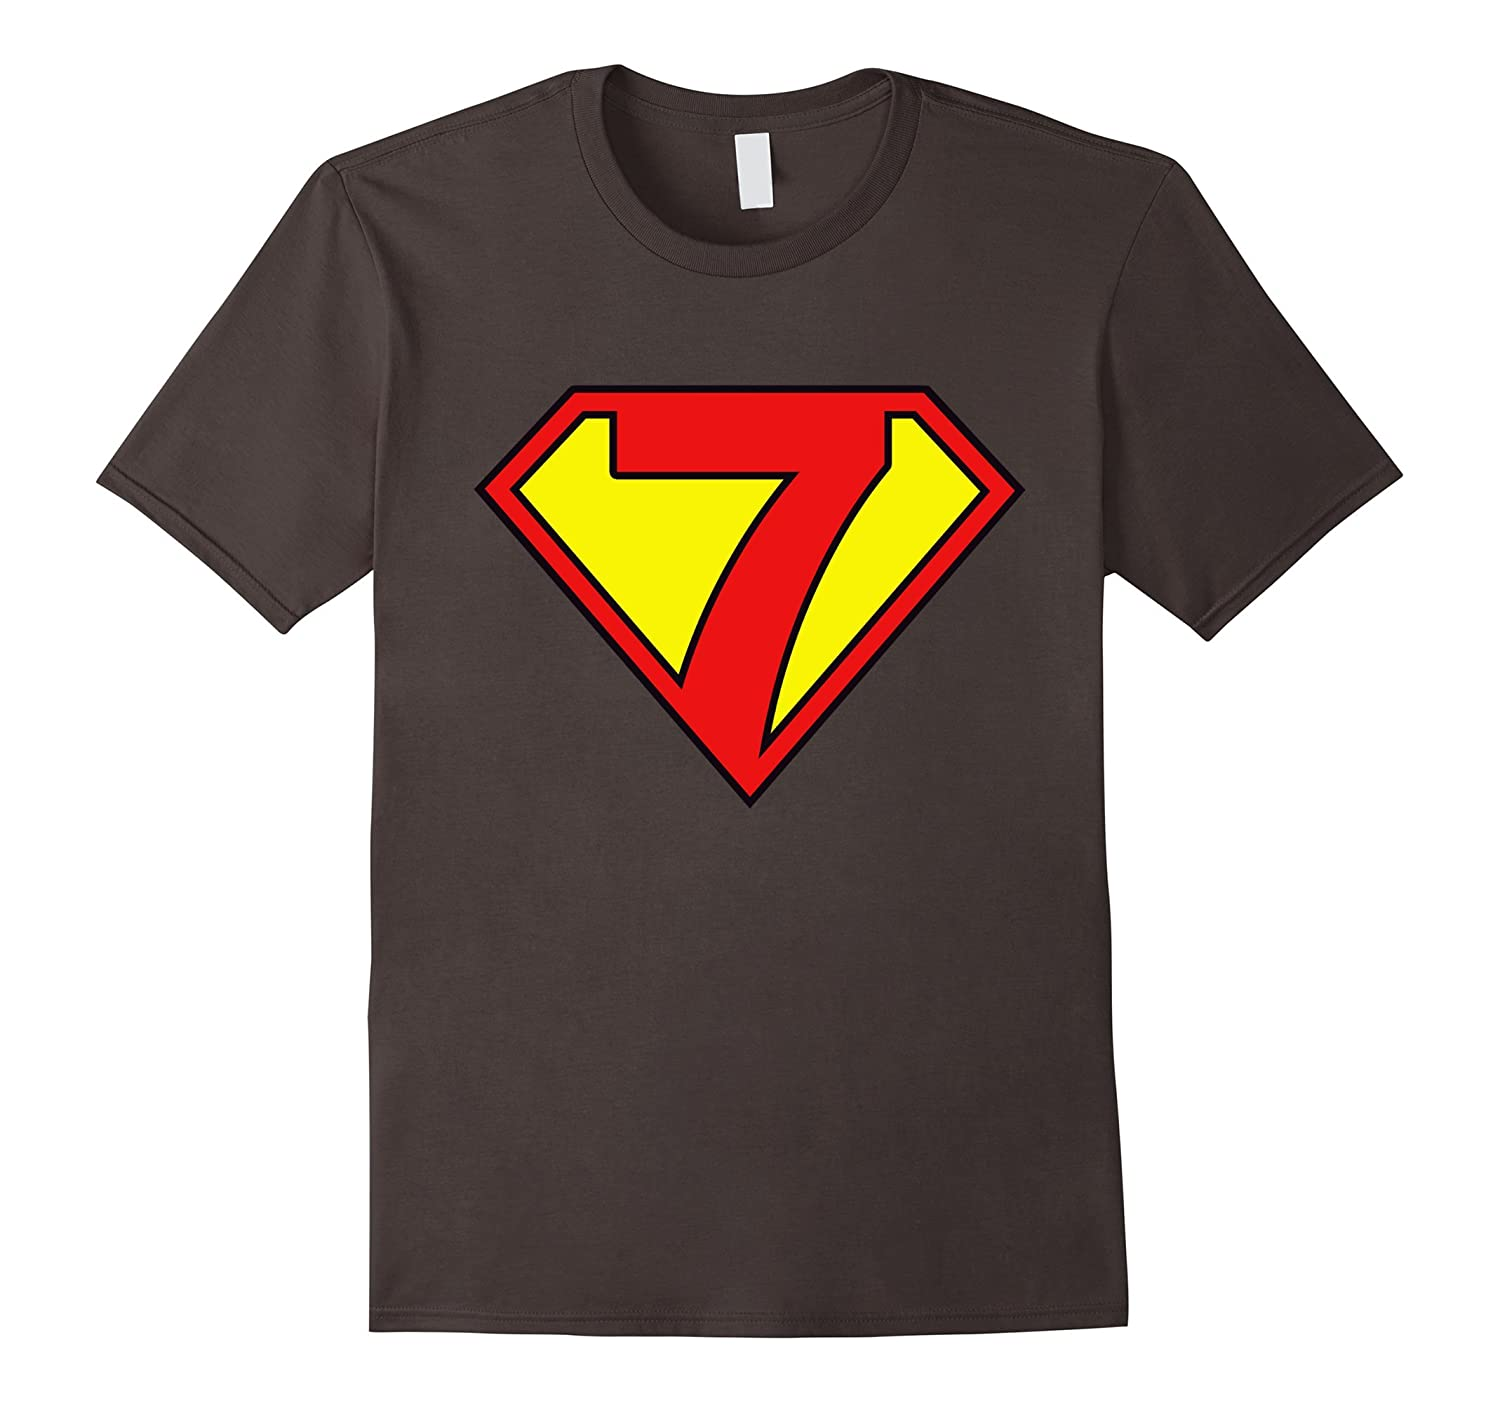 Super Hero 7th Birthday Tshirt Gift 7 Years Old Kid Boy Girl PL